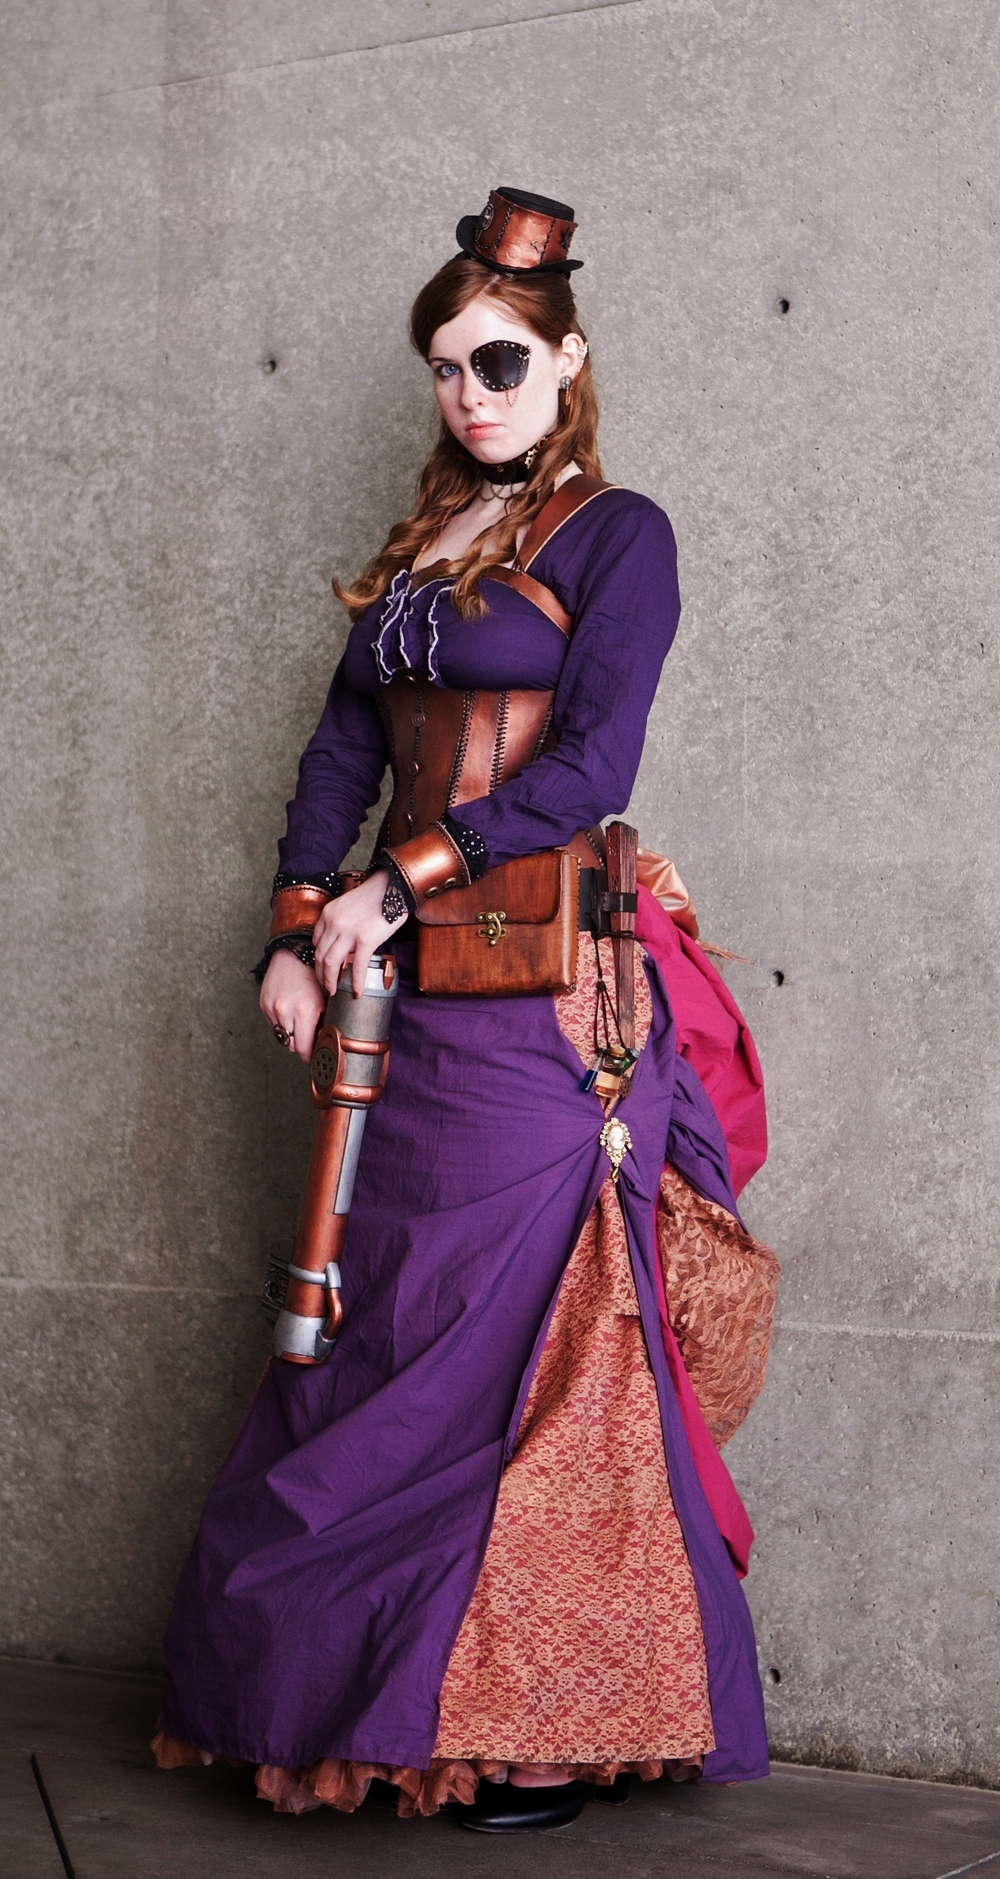 Tayliss Forge - Steampunk Assassin, Photo taken by Simply Colorful